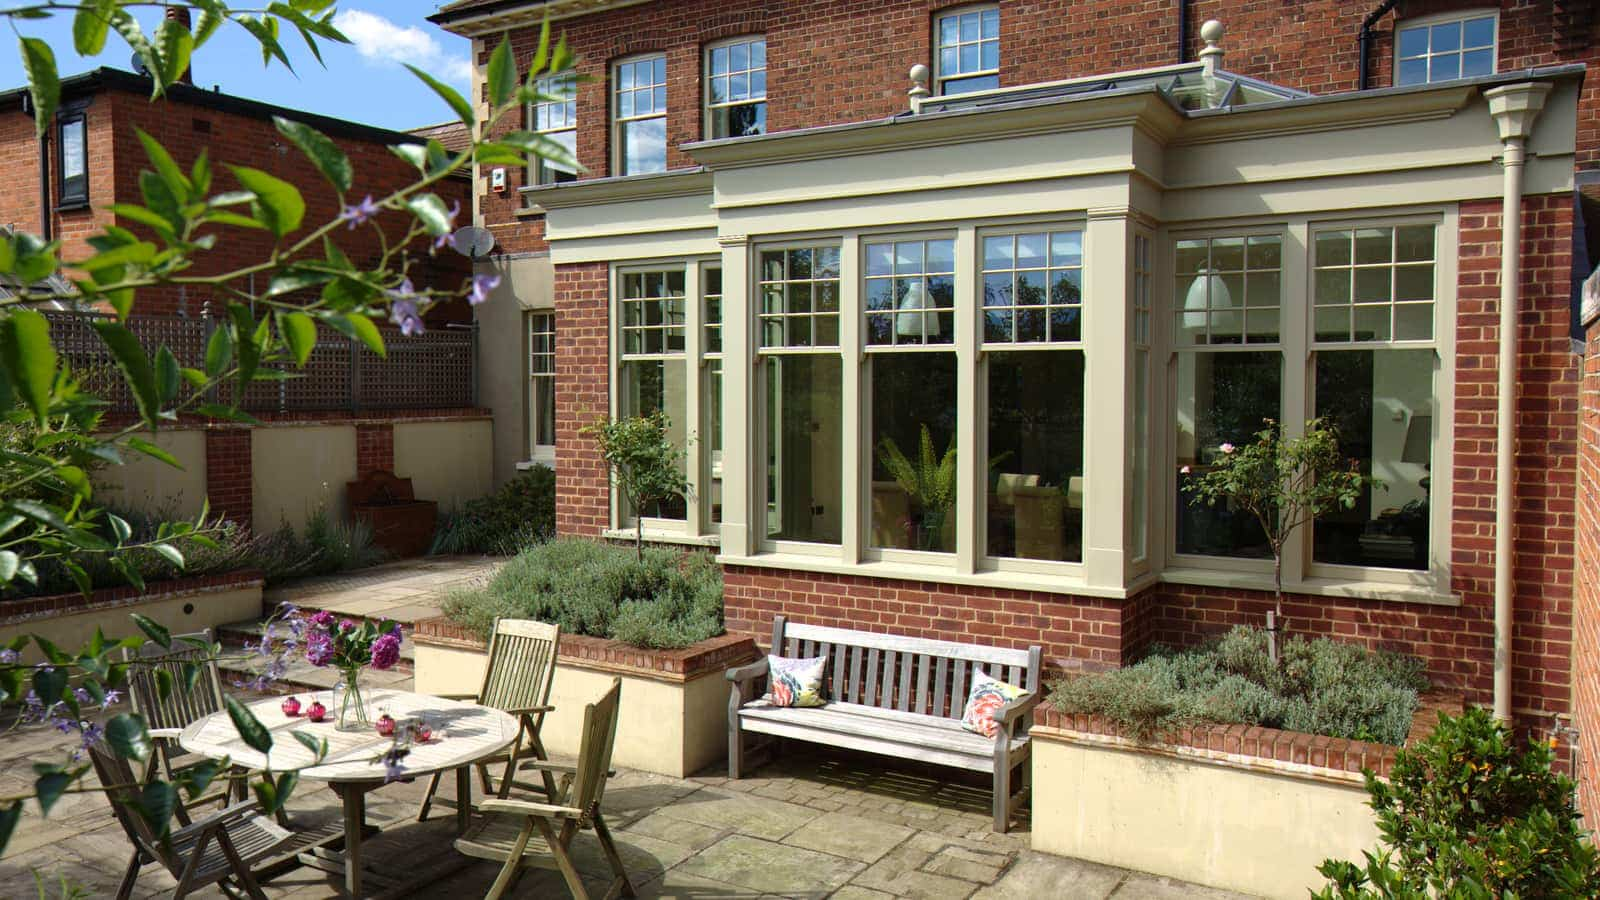 Uniquely shaped orangery with a beautiful symmetrical look aesthetically pleasing from both inside and out